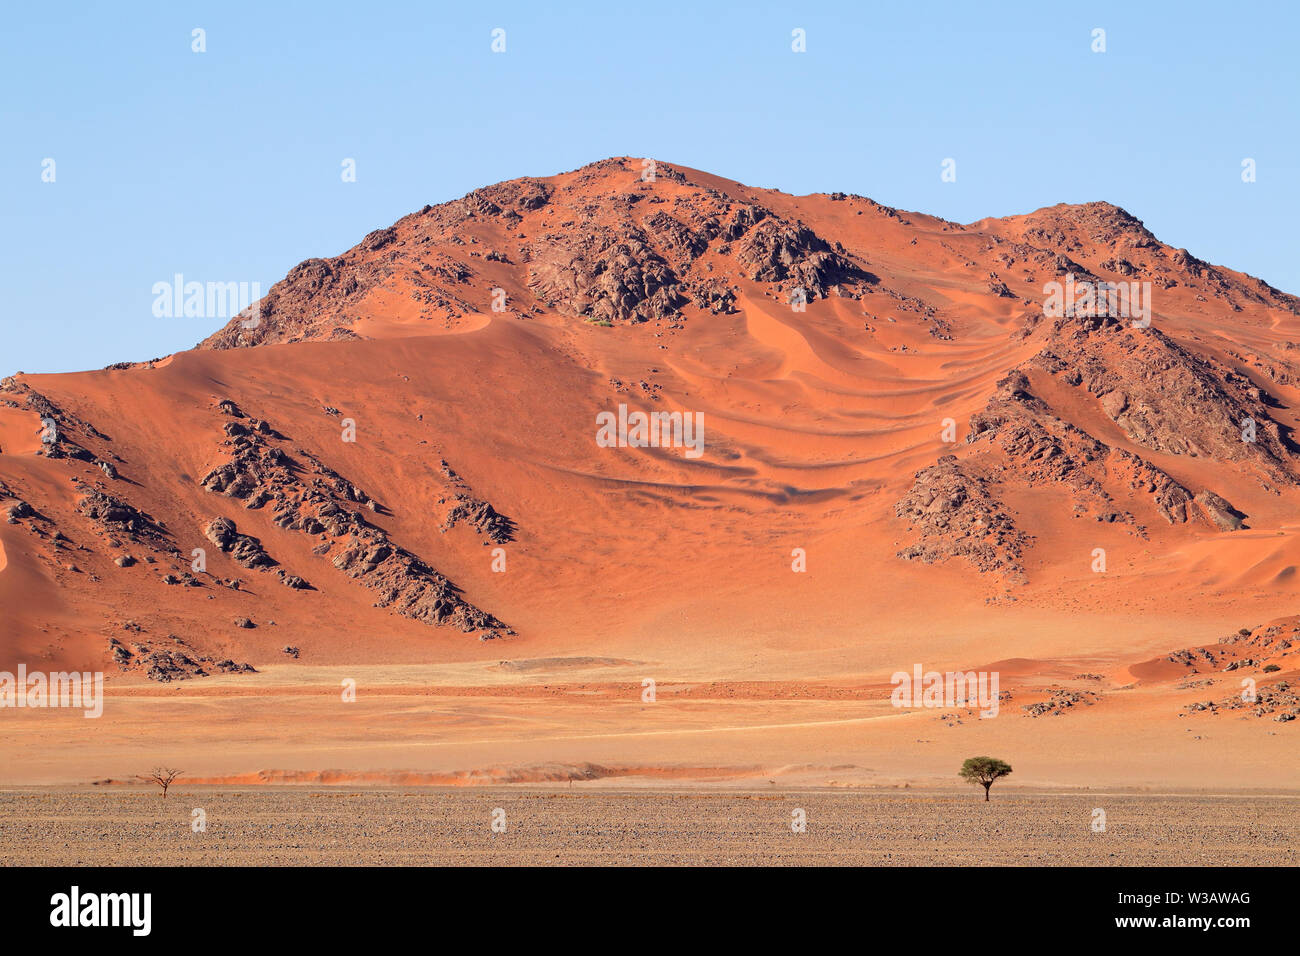 Rugged dune landscape, Sossusvlei, Namib desert, Namibia Stock Photo